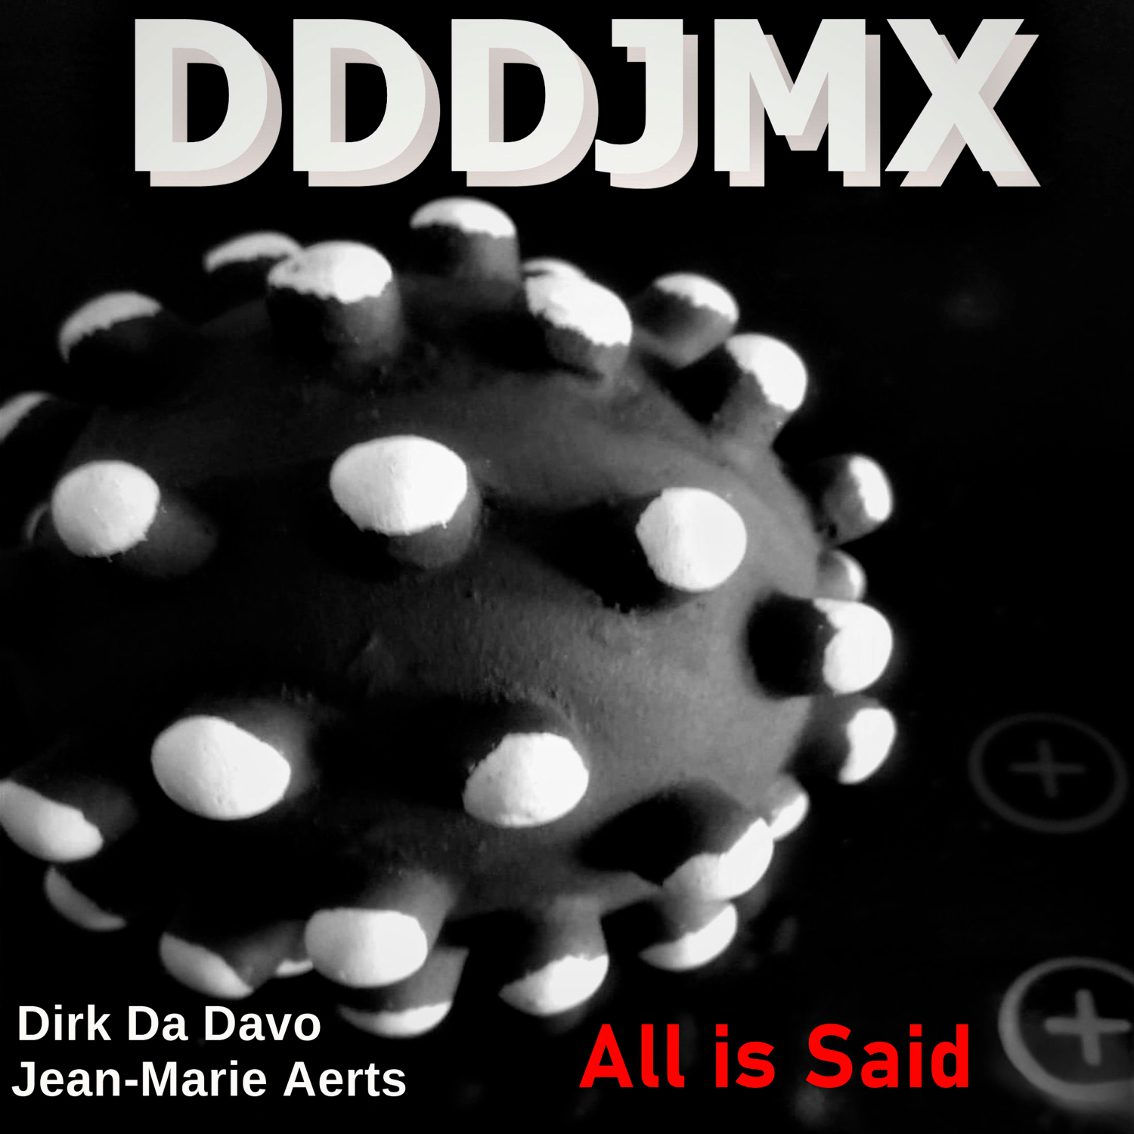 Dirk Da Davo (The Neon Judgement) and Jean-Marie Aerts (TC Matic) join hands for new album